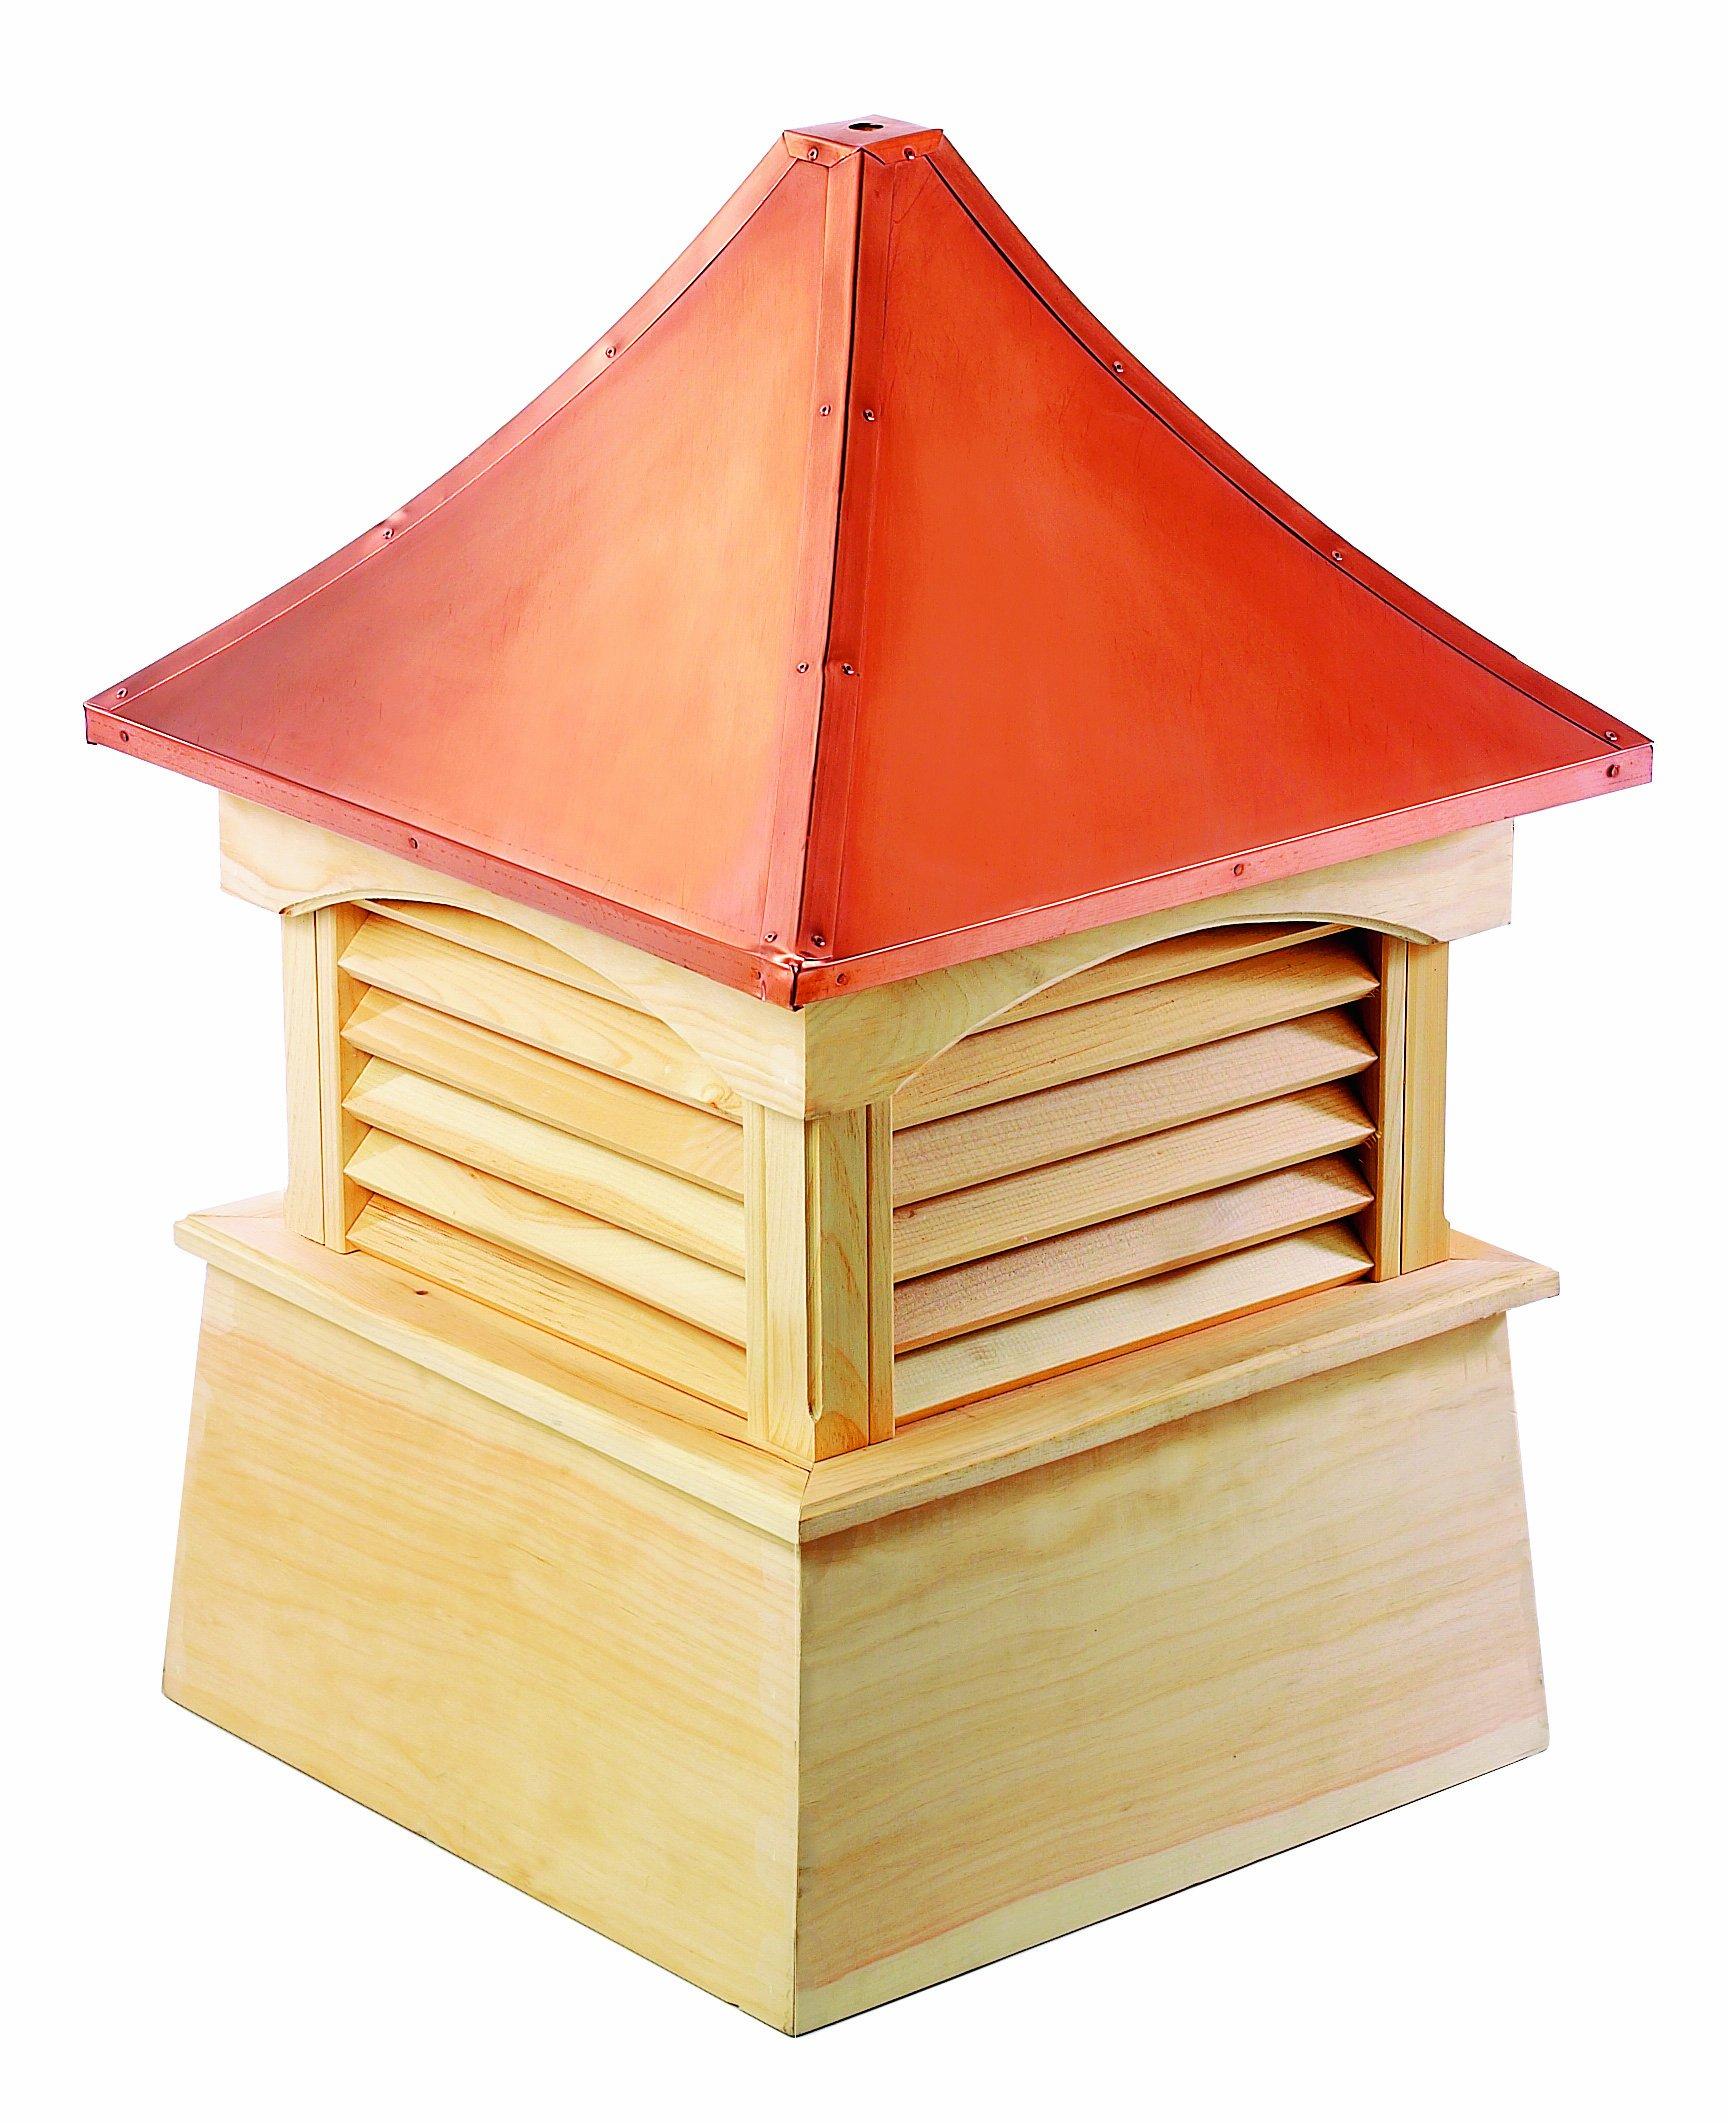 Good Directions Coventry Louvered Cupola with Pure Copper Roof, Cypress Wood, 36'' x 49'', Reinforced Rafters and Louvers, Cupolas